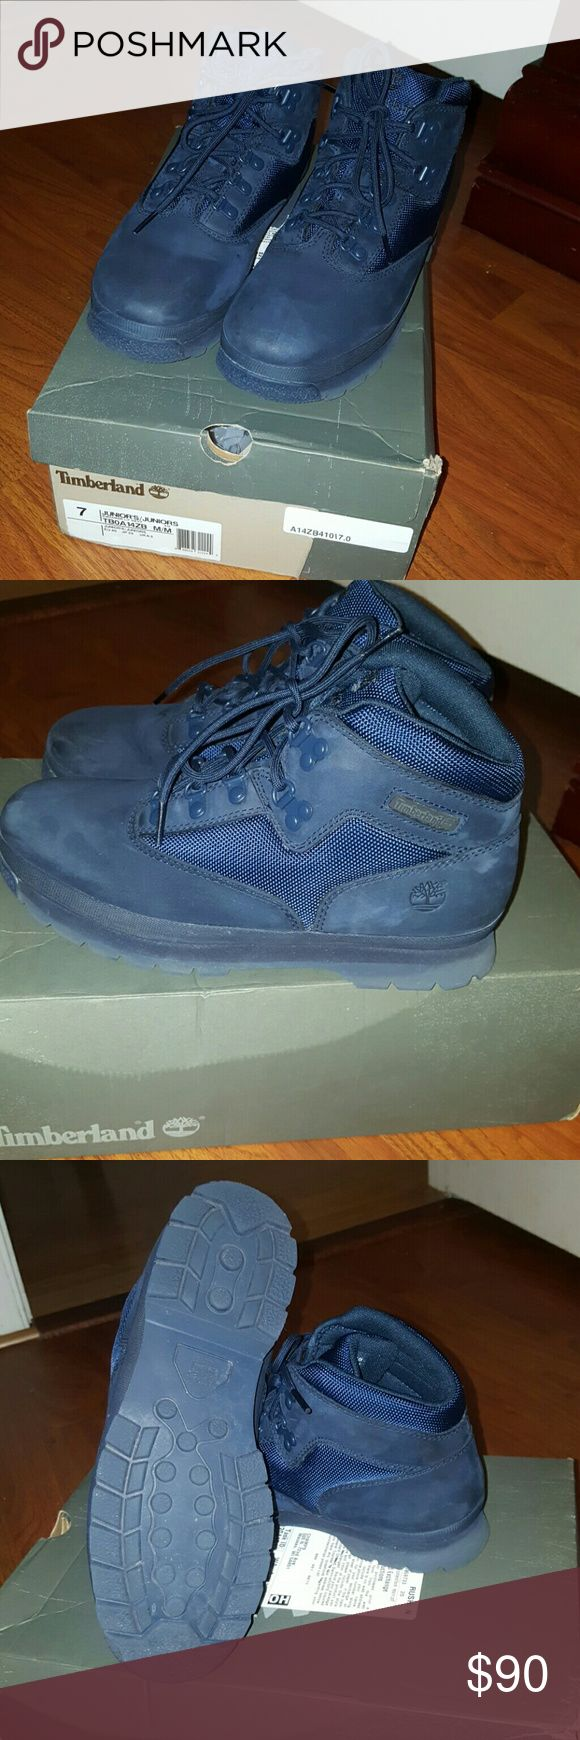 Navy blue EUROHIKER TIMBERLAND BOOTS 7Y NAVY BLUE BLARELY WORN EUROHIKER TIMBERLAND BOOTS WITH ORIGINAL BOX SIZE 7Y Timberland Shoes Ankle Boots & Booties